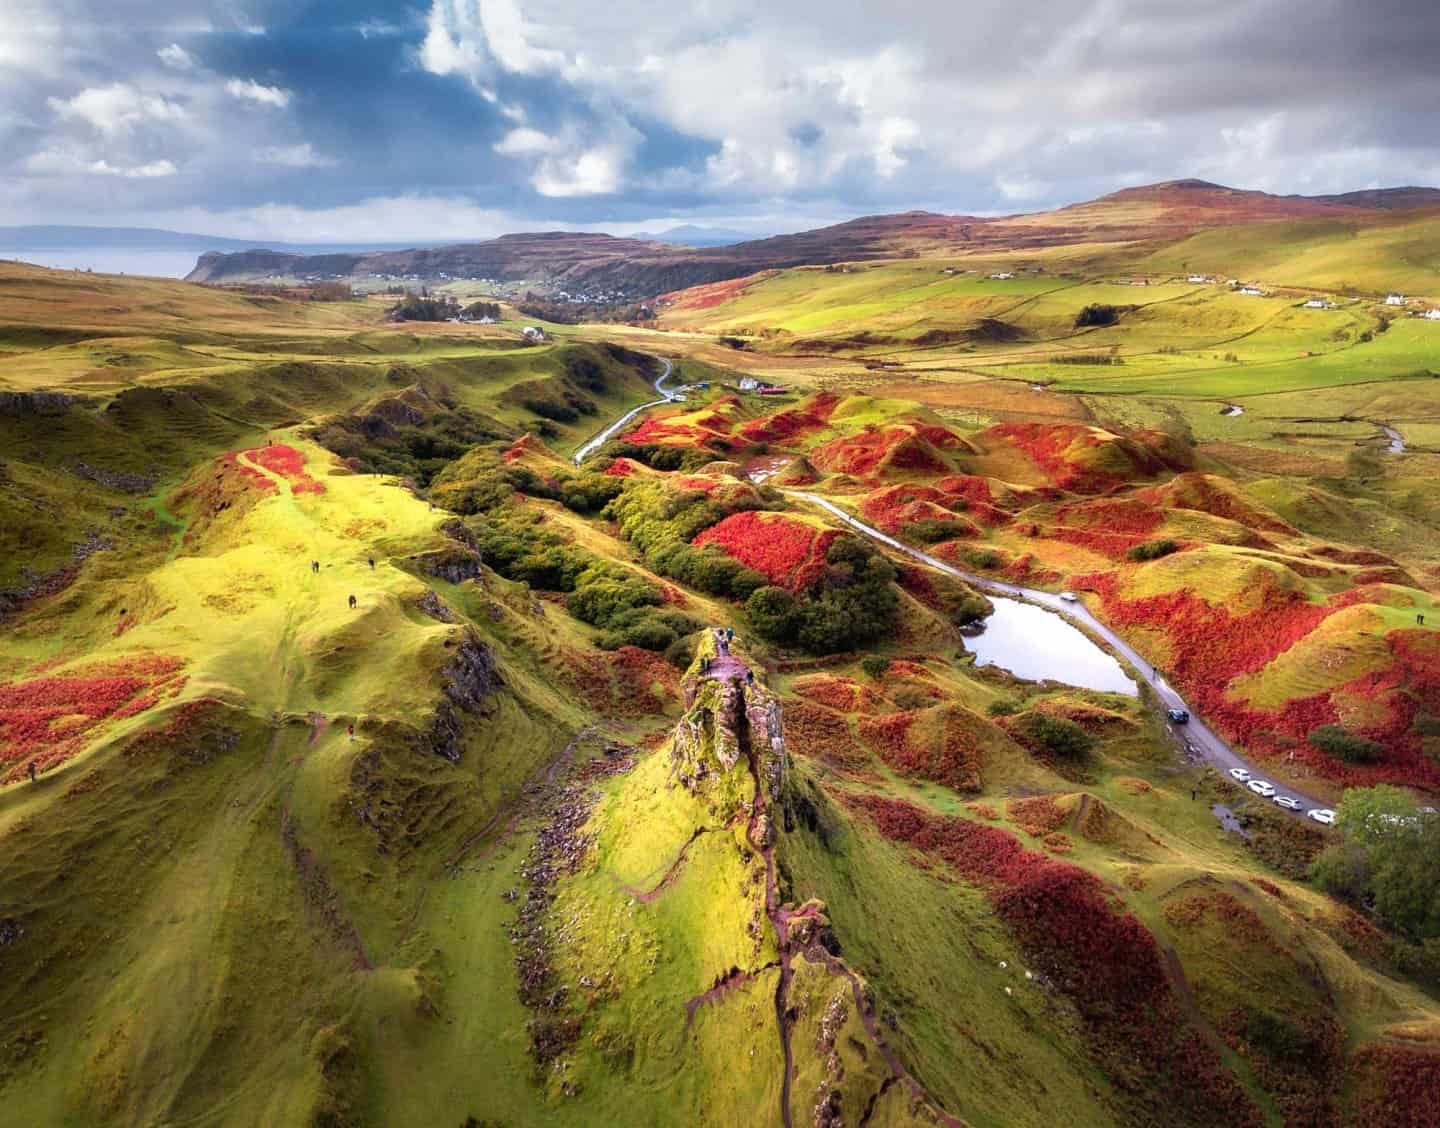 A rare moment of sunshine over 10 days in Scotland as golden light spills onto Fairy Glen, captured by drone.